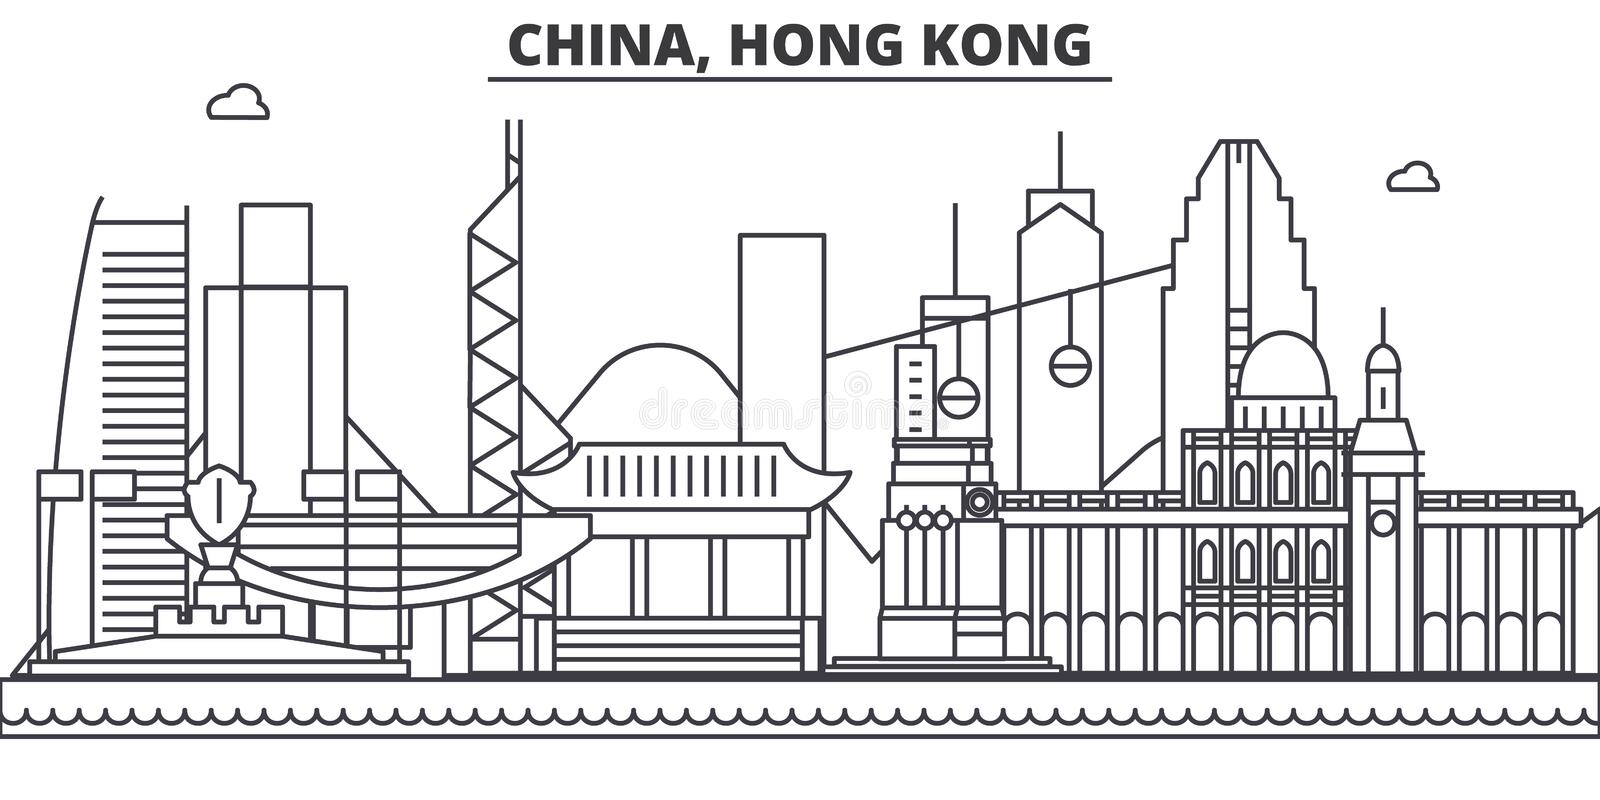 Download China Hong Kong 1 Architecture Line Skyline Illustration Linear Vector Cityscape With Famous